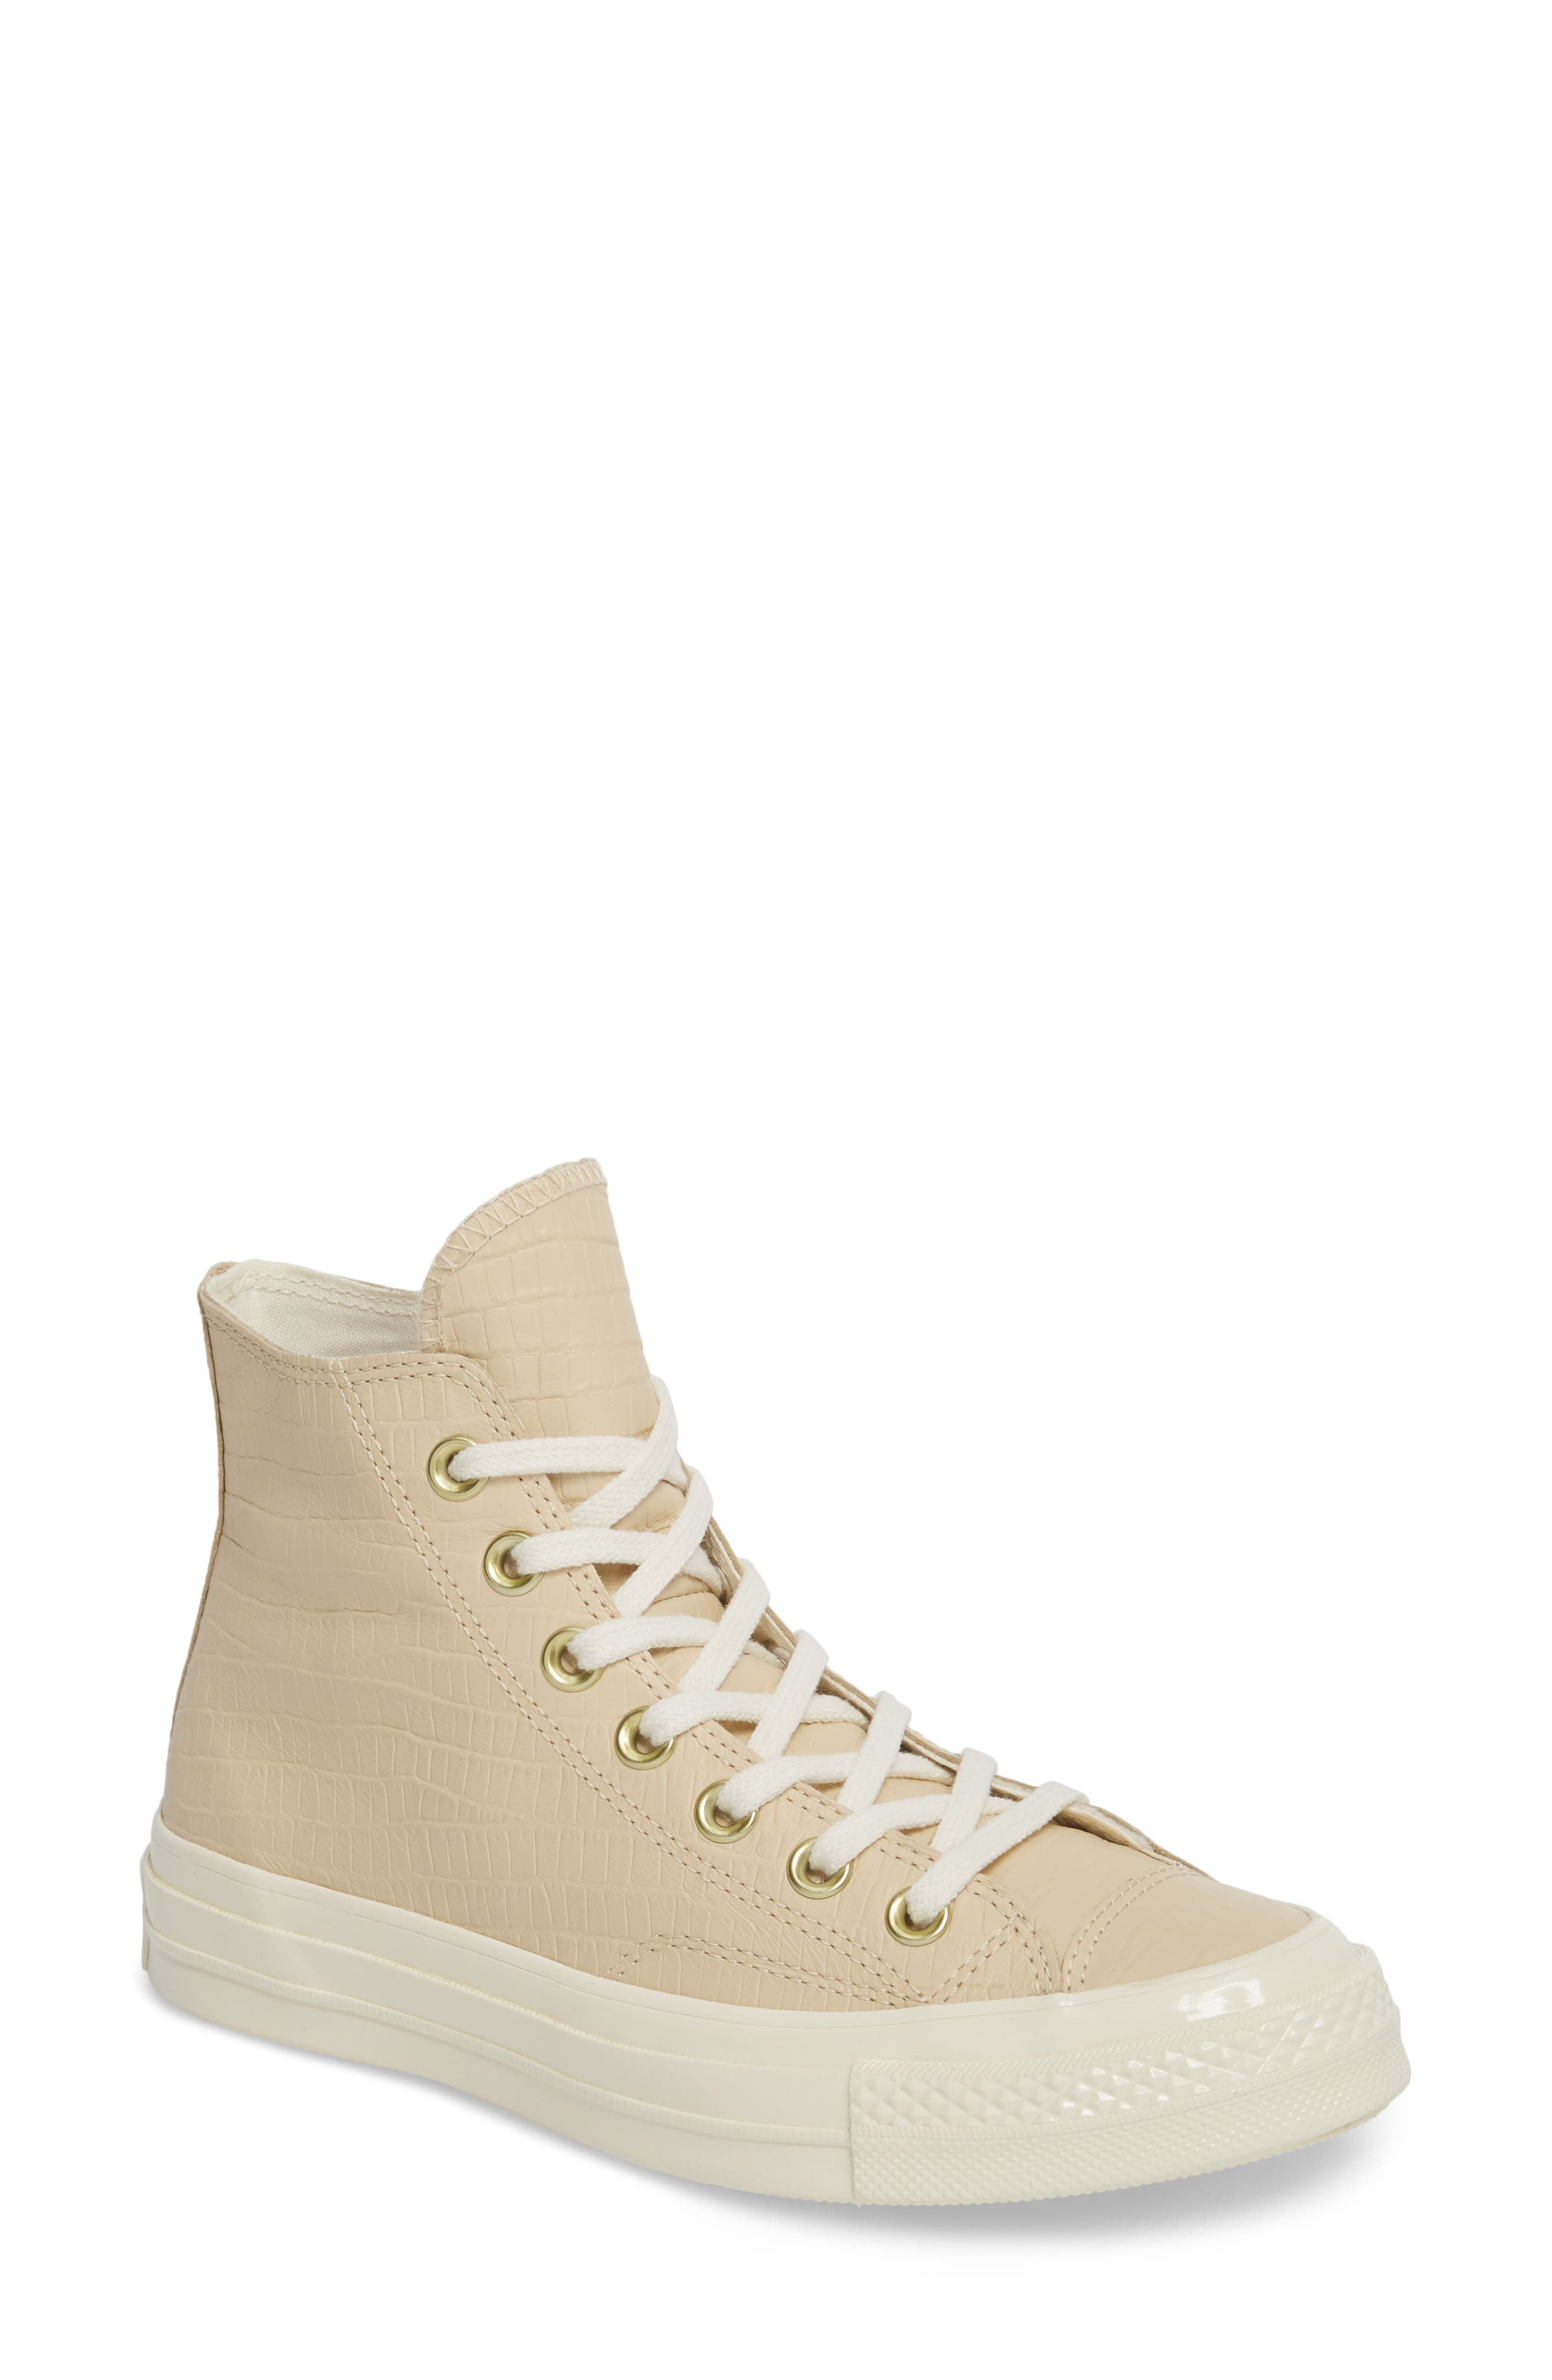 Converse Chuck Taylor® All Star® CT 70 Reptile High Top Sneaker (Women)